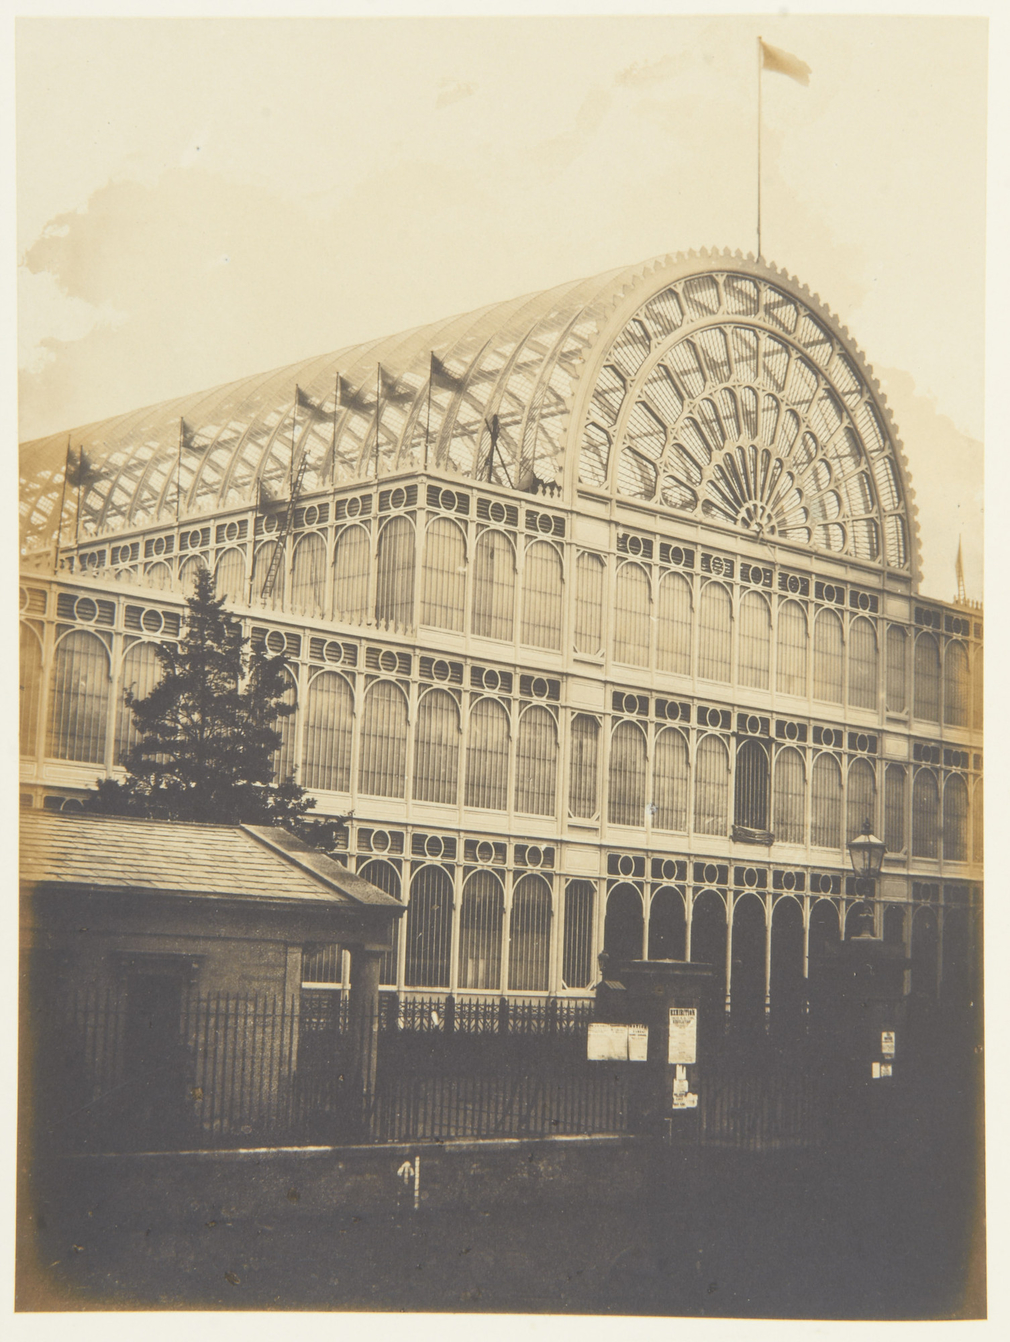 Photographof anexternal view of the south transept of the Crystal Palace, Hyde Park during the Great Exhibition.Flags fly along the building and top ofthe arched roof.    This photograph is from Volume II (RCIN 2800001) of ' Exhibi